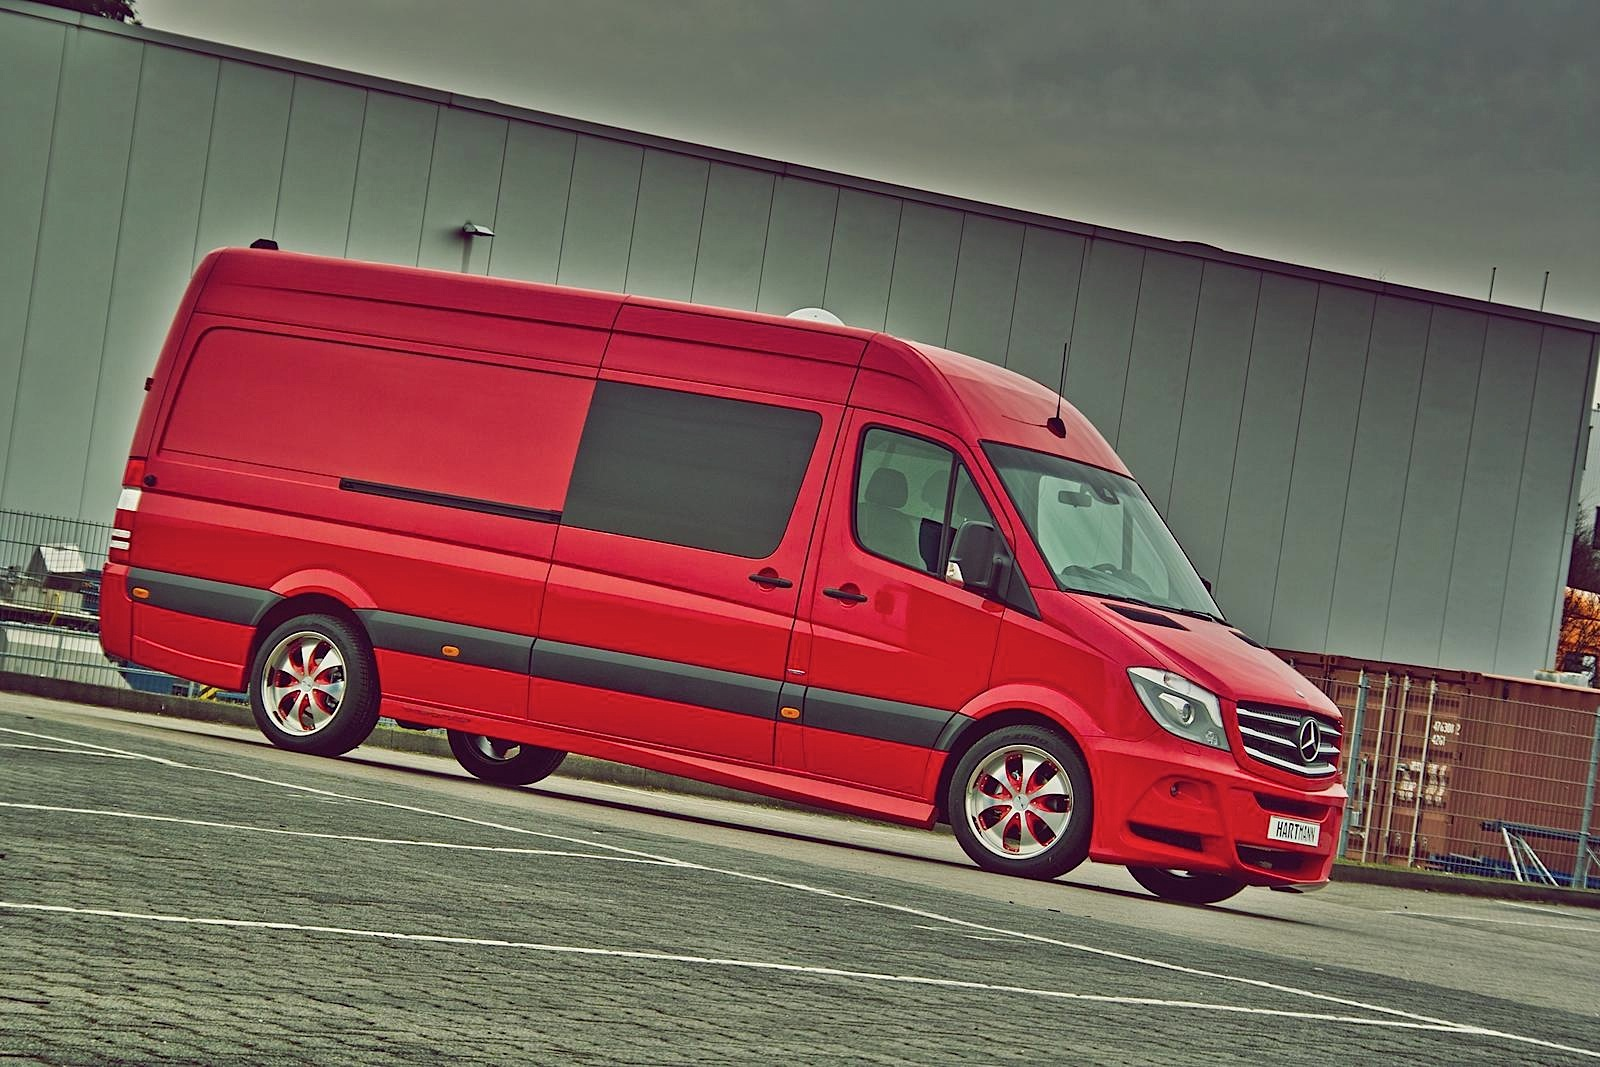 Mercedes Benz Parts Miamicool Wiring Diagram For 73 Ml350 2005 This Sprinter Could Be Santa Claus